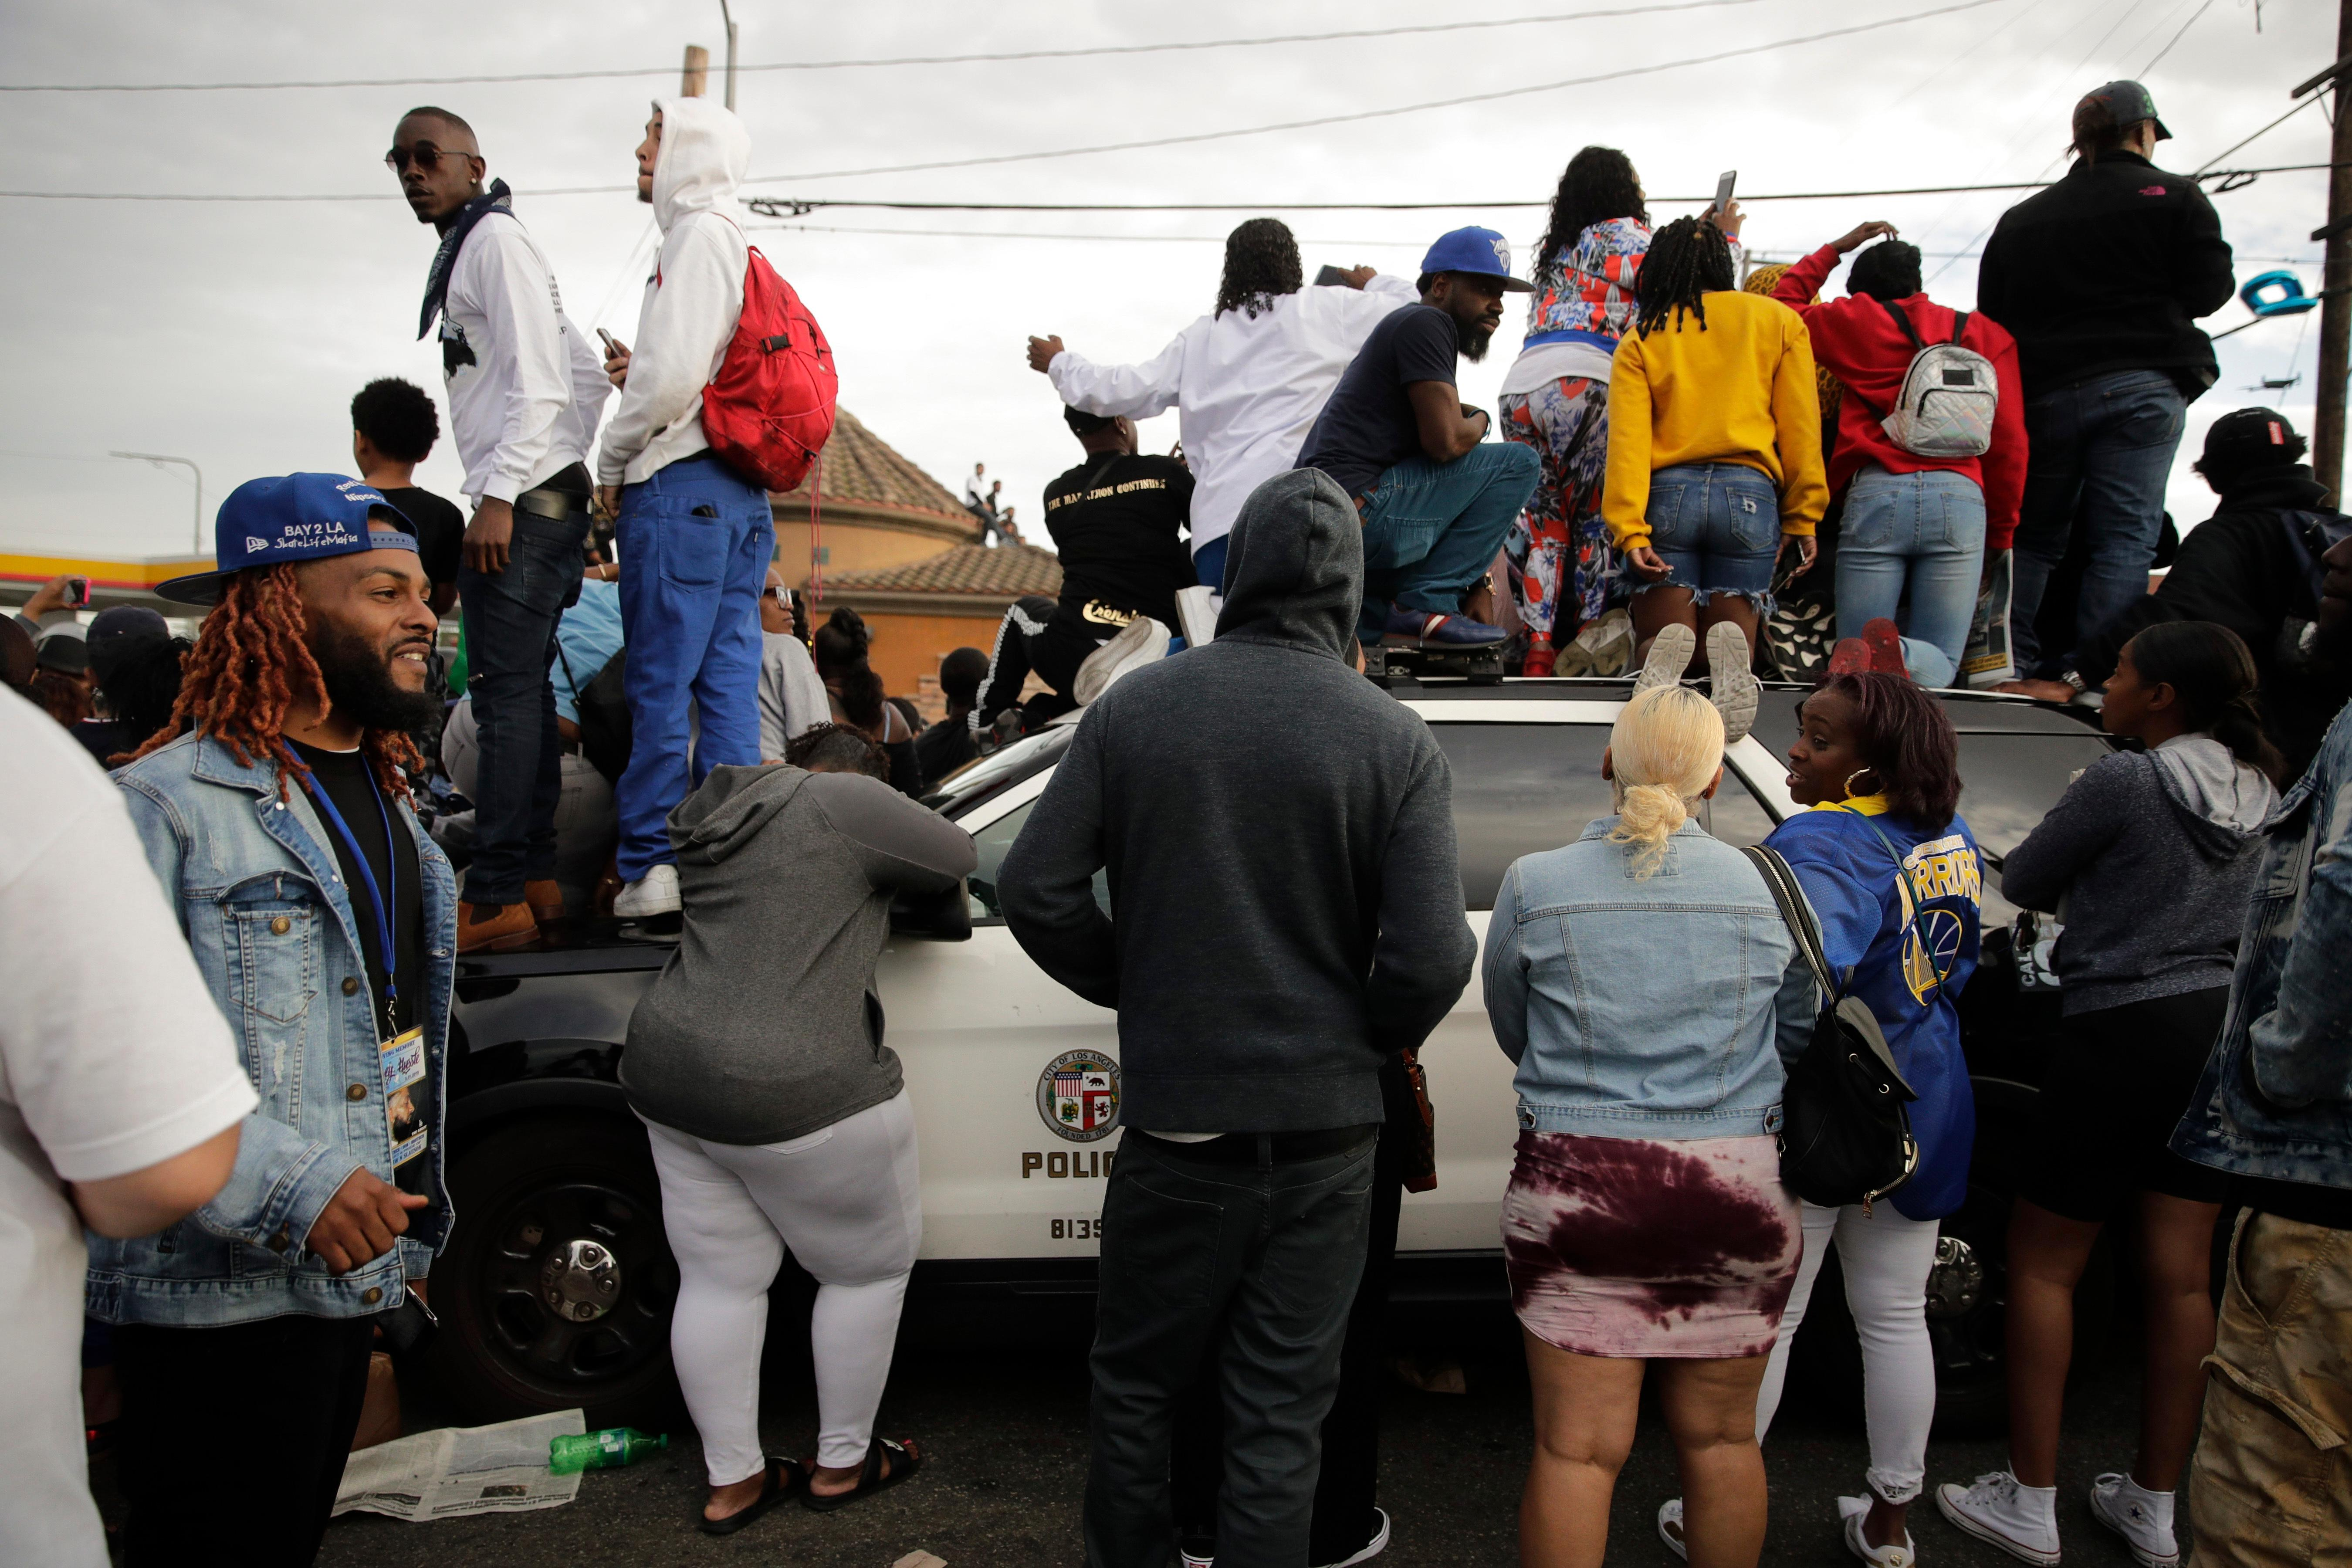 People climb on a police vehicle to watch a hearse carrying the casket of slain rapper Nipsey Hussle Thursday, April 11, 2019, in Los Angeles. (AP Photo/Jae C. Hong)